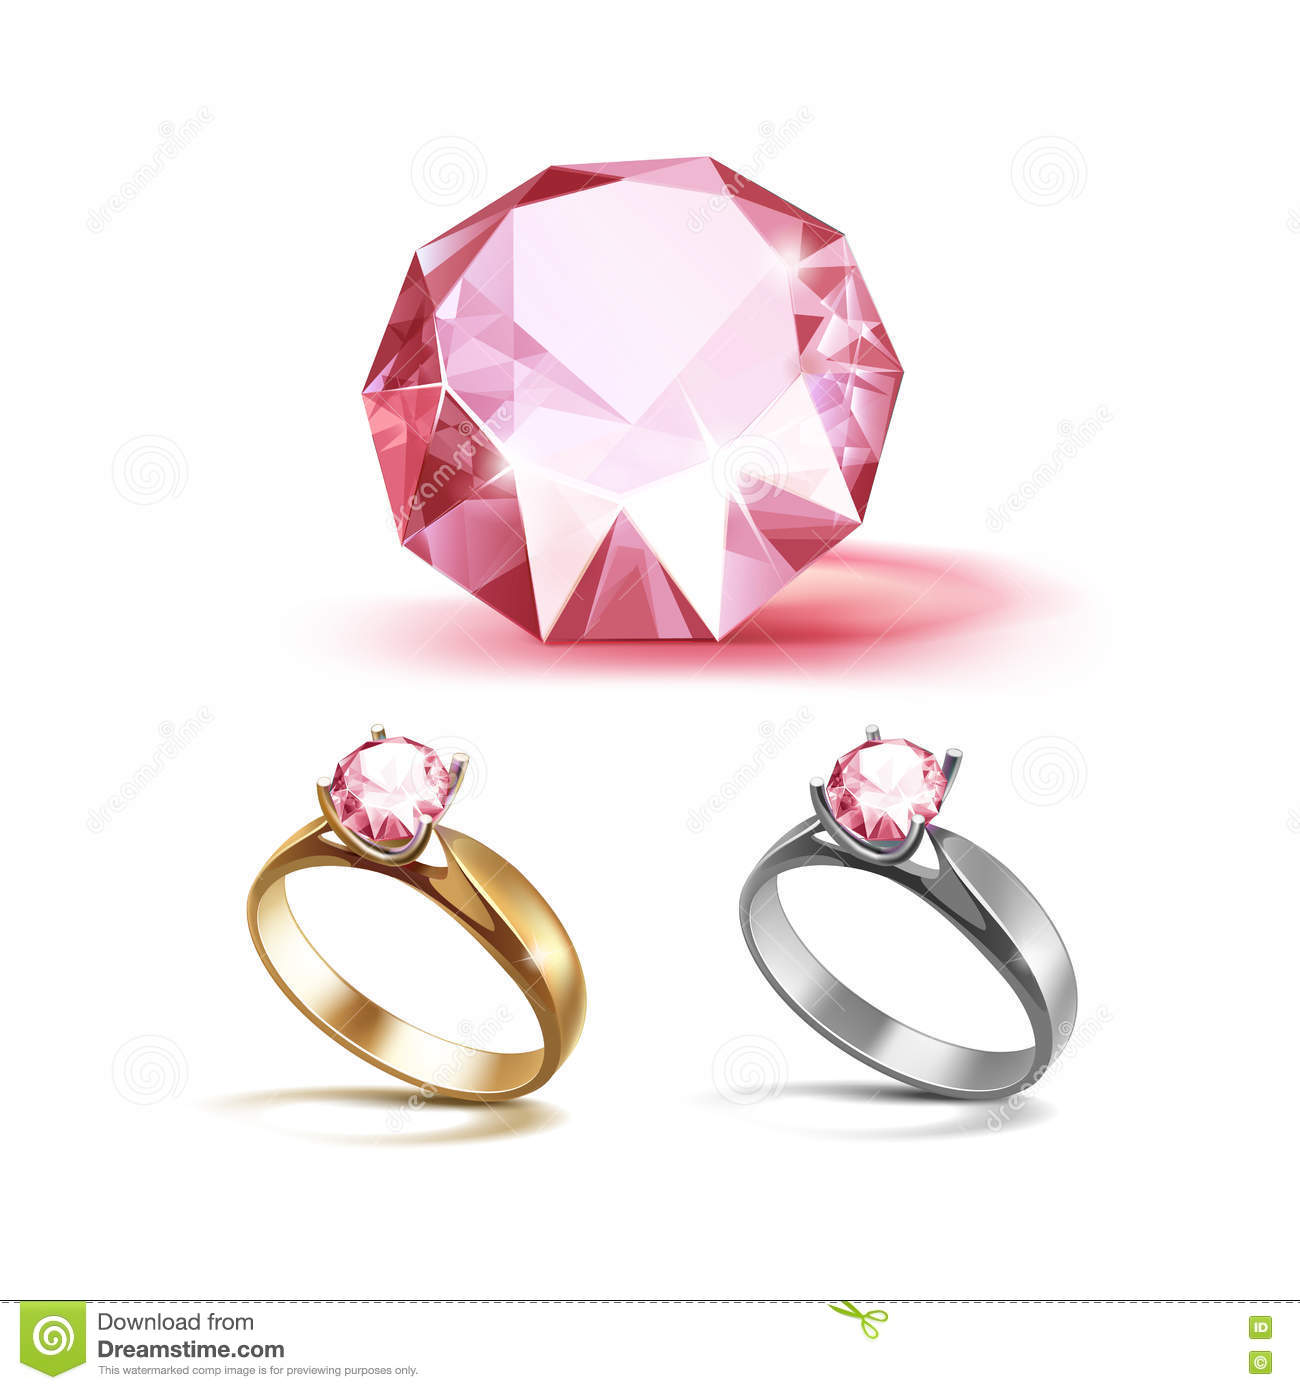 Gold And Siver Engagement Rings With Pink Shiny Clear Diamond Stock ...